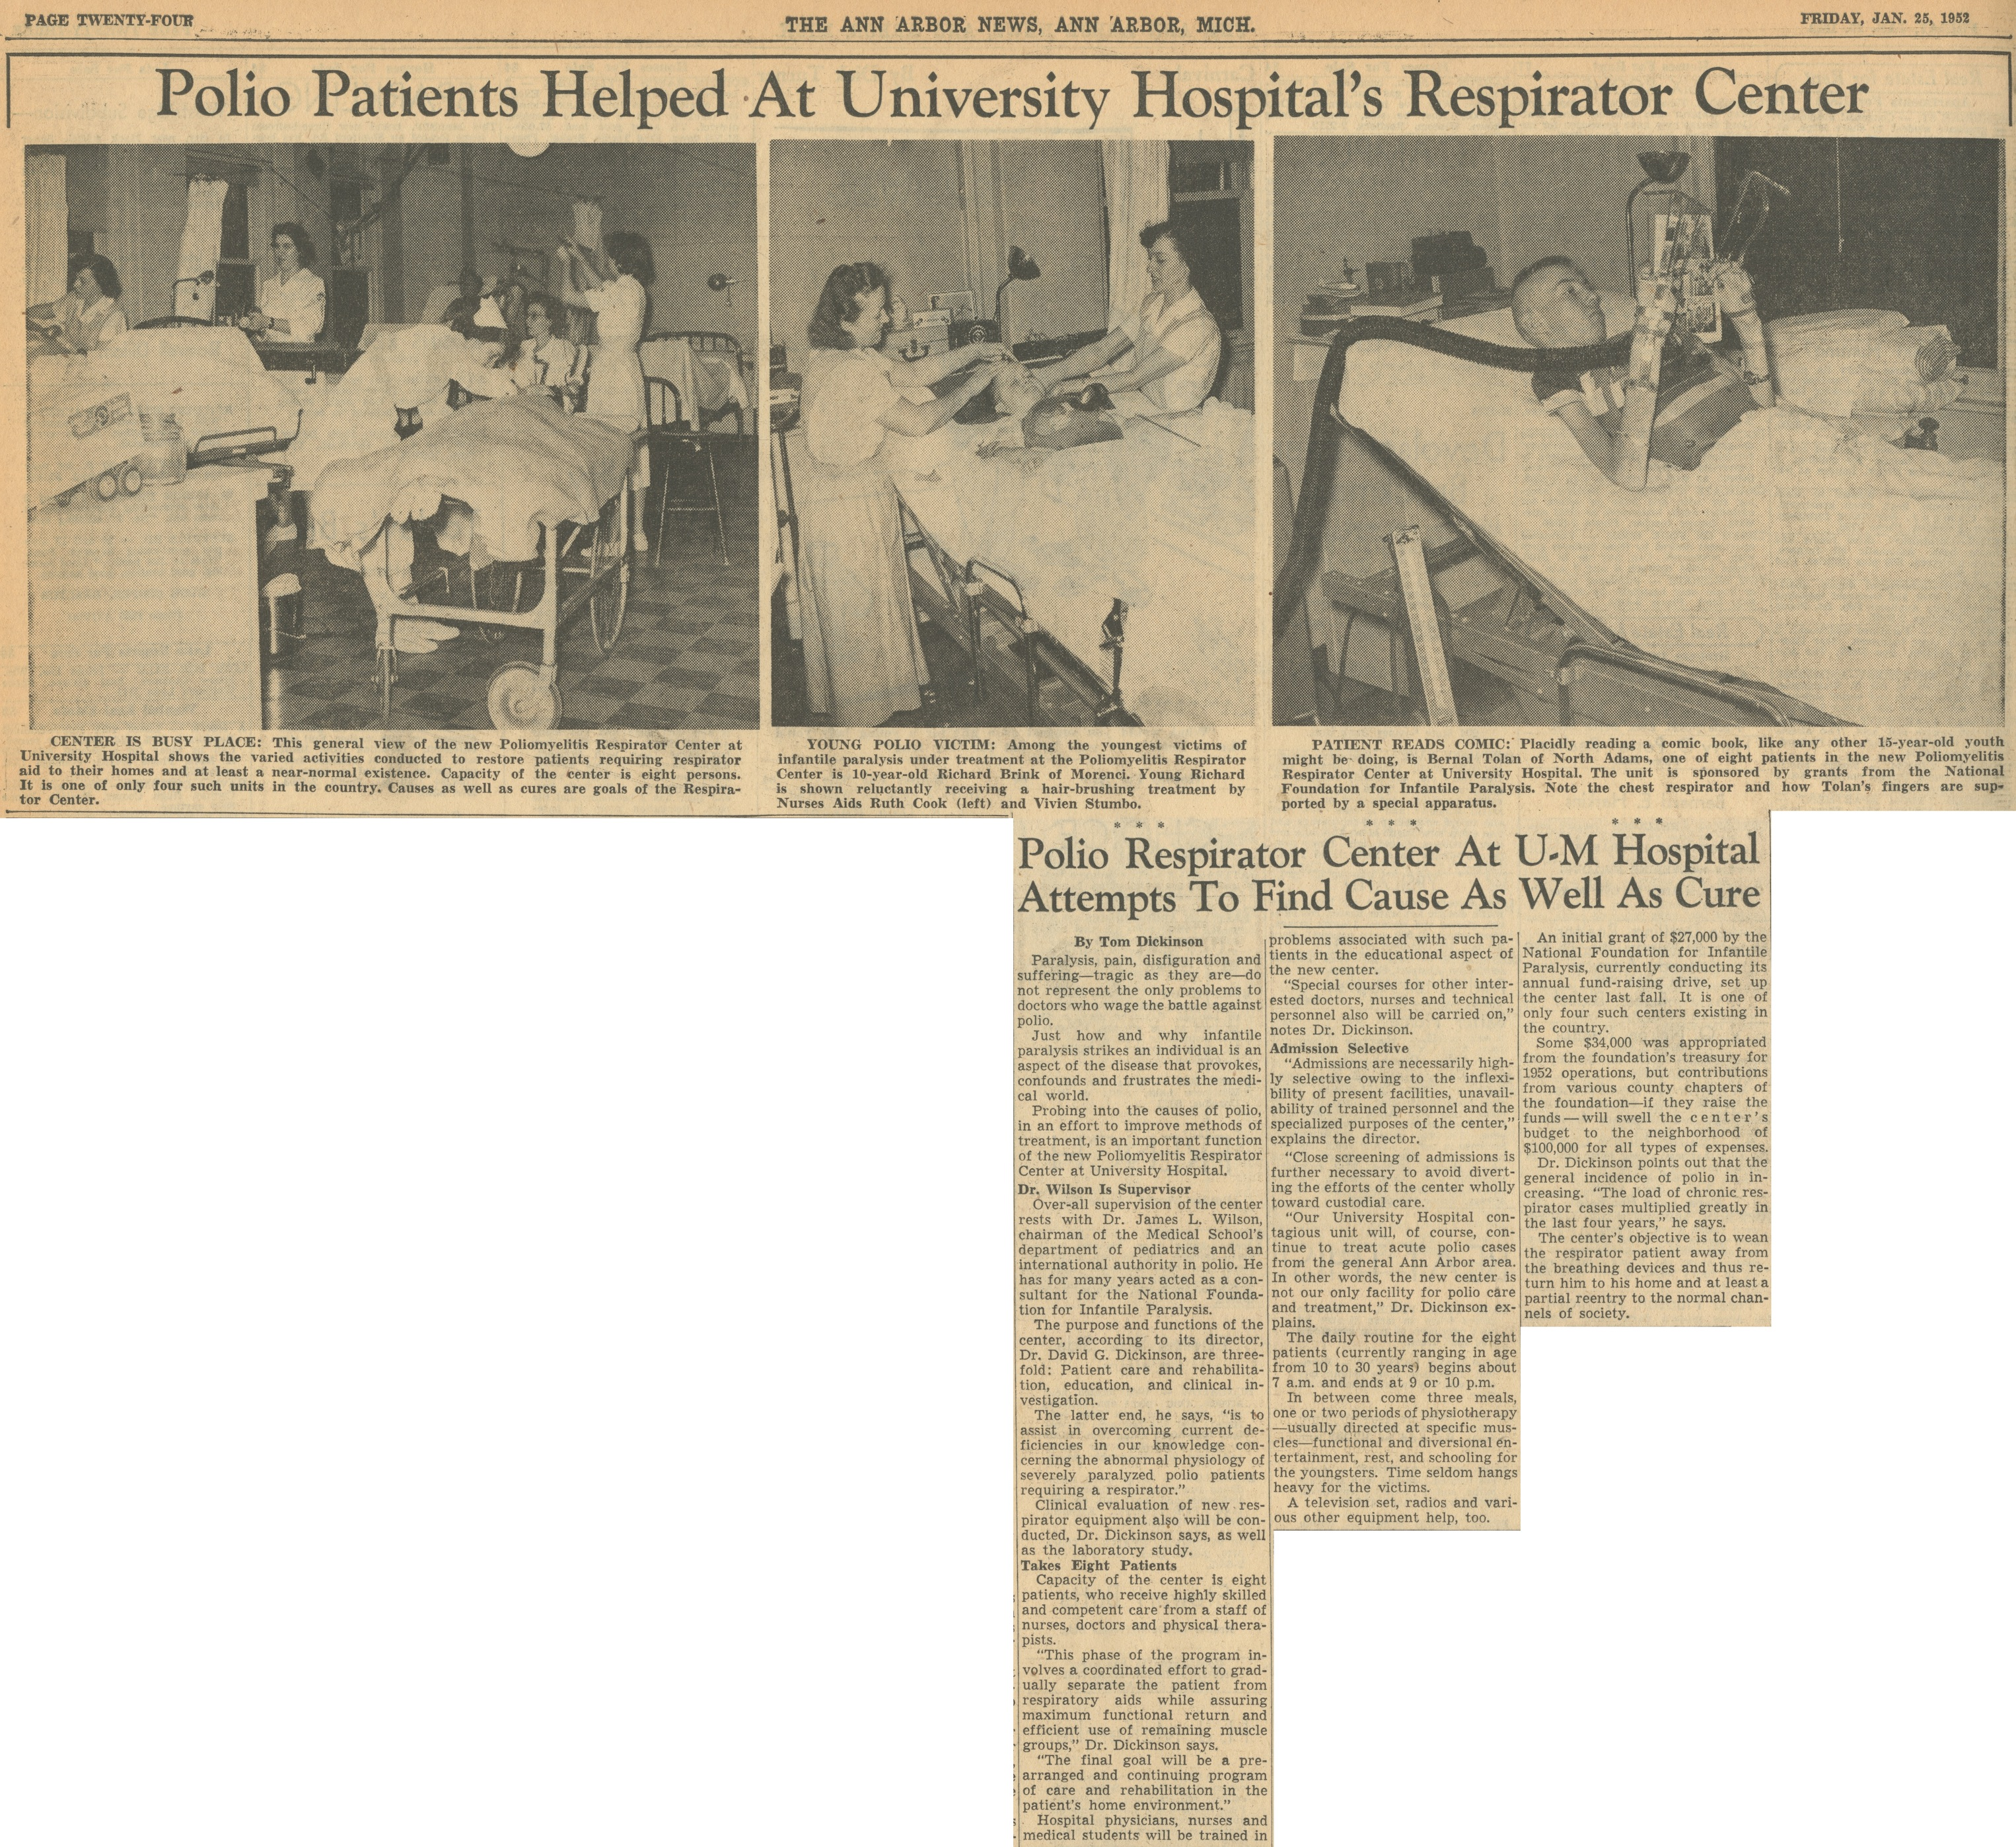 Polio Patients Helped At University Hospital's Respirator Center image